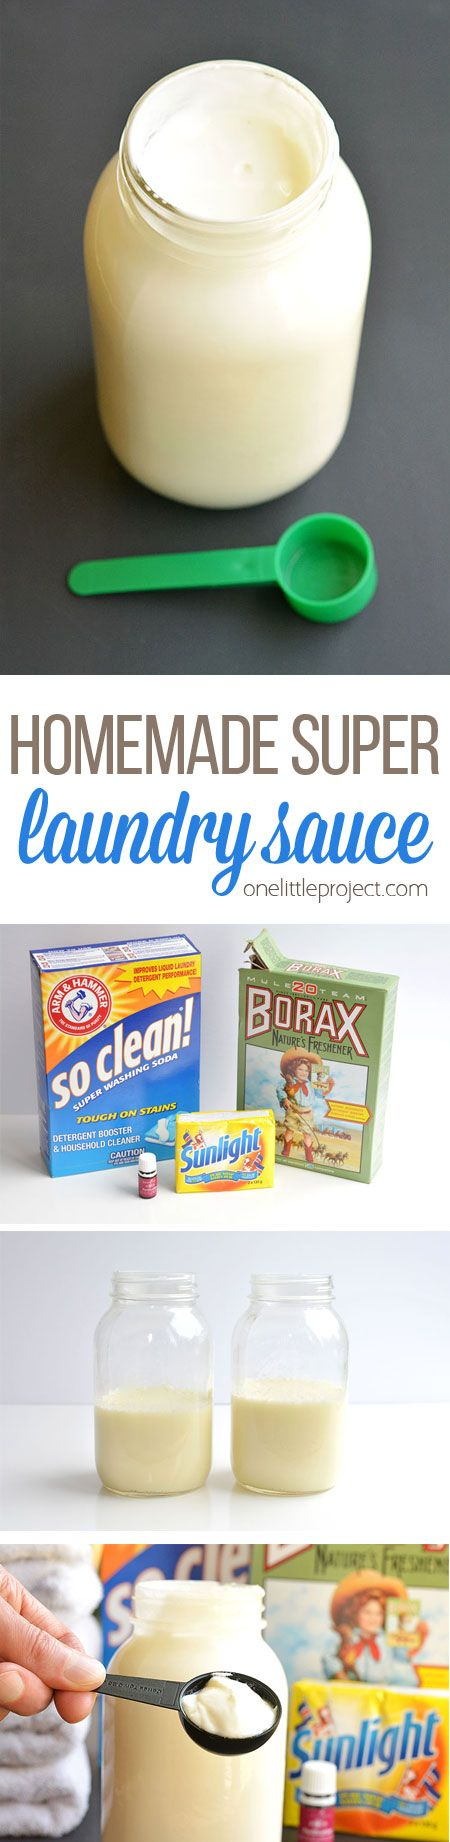 Use Detergent To Make Room Smells Clean